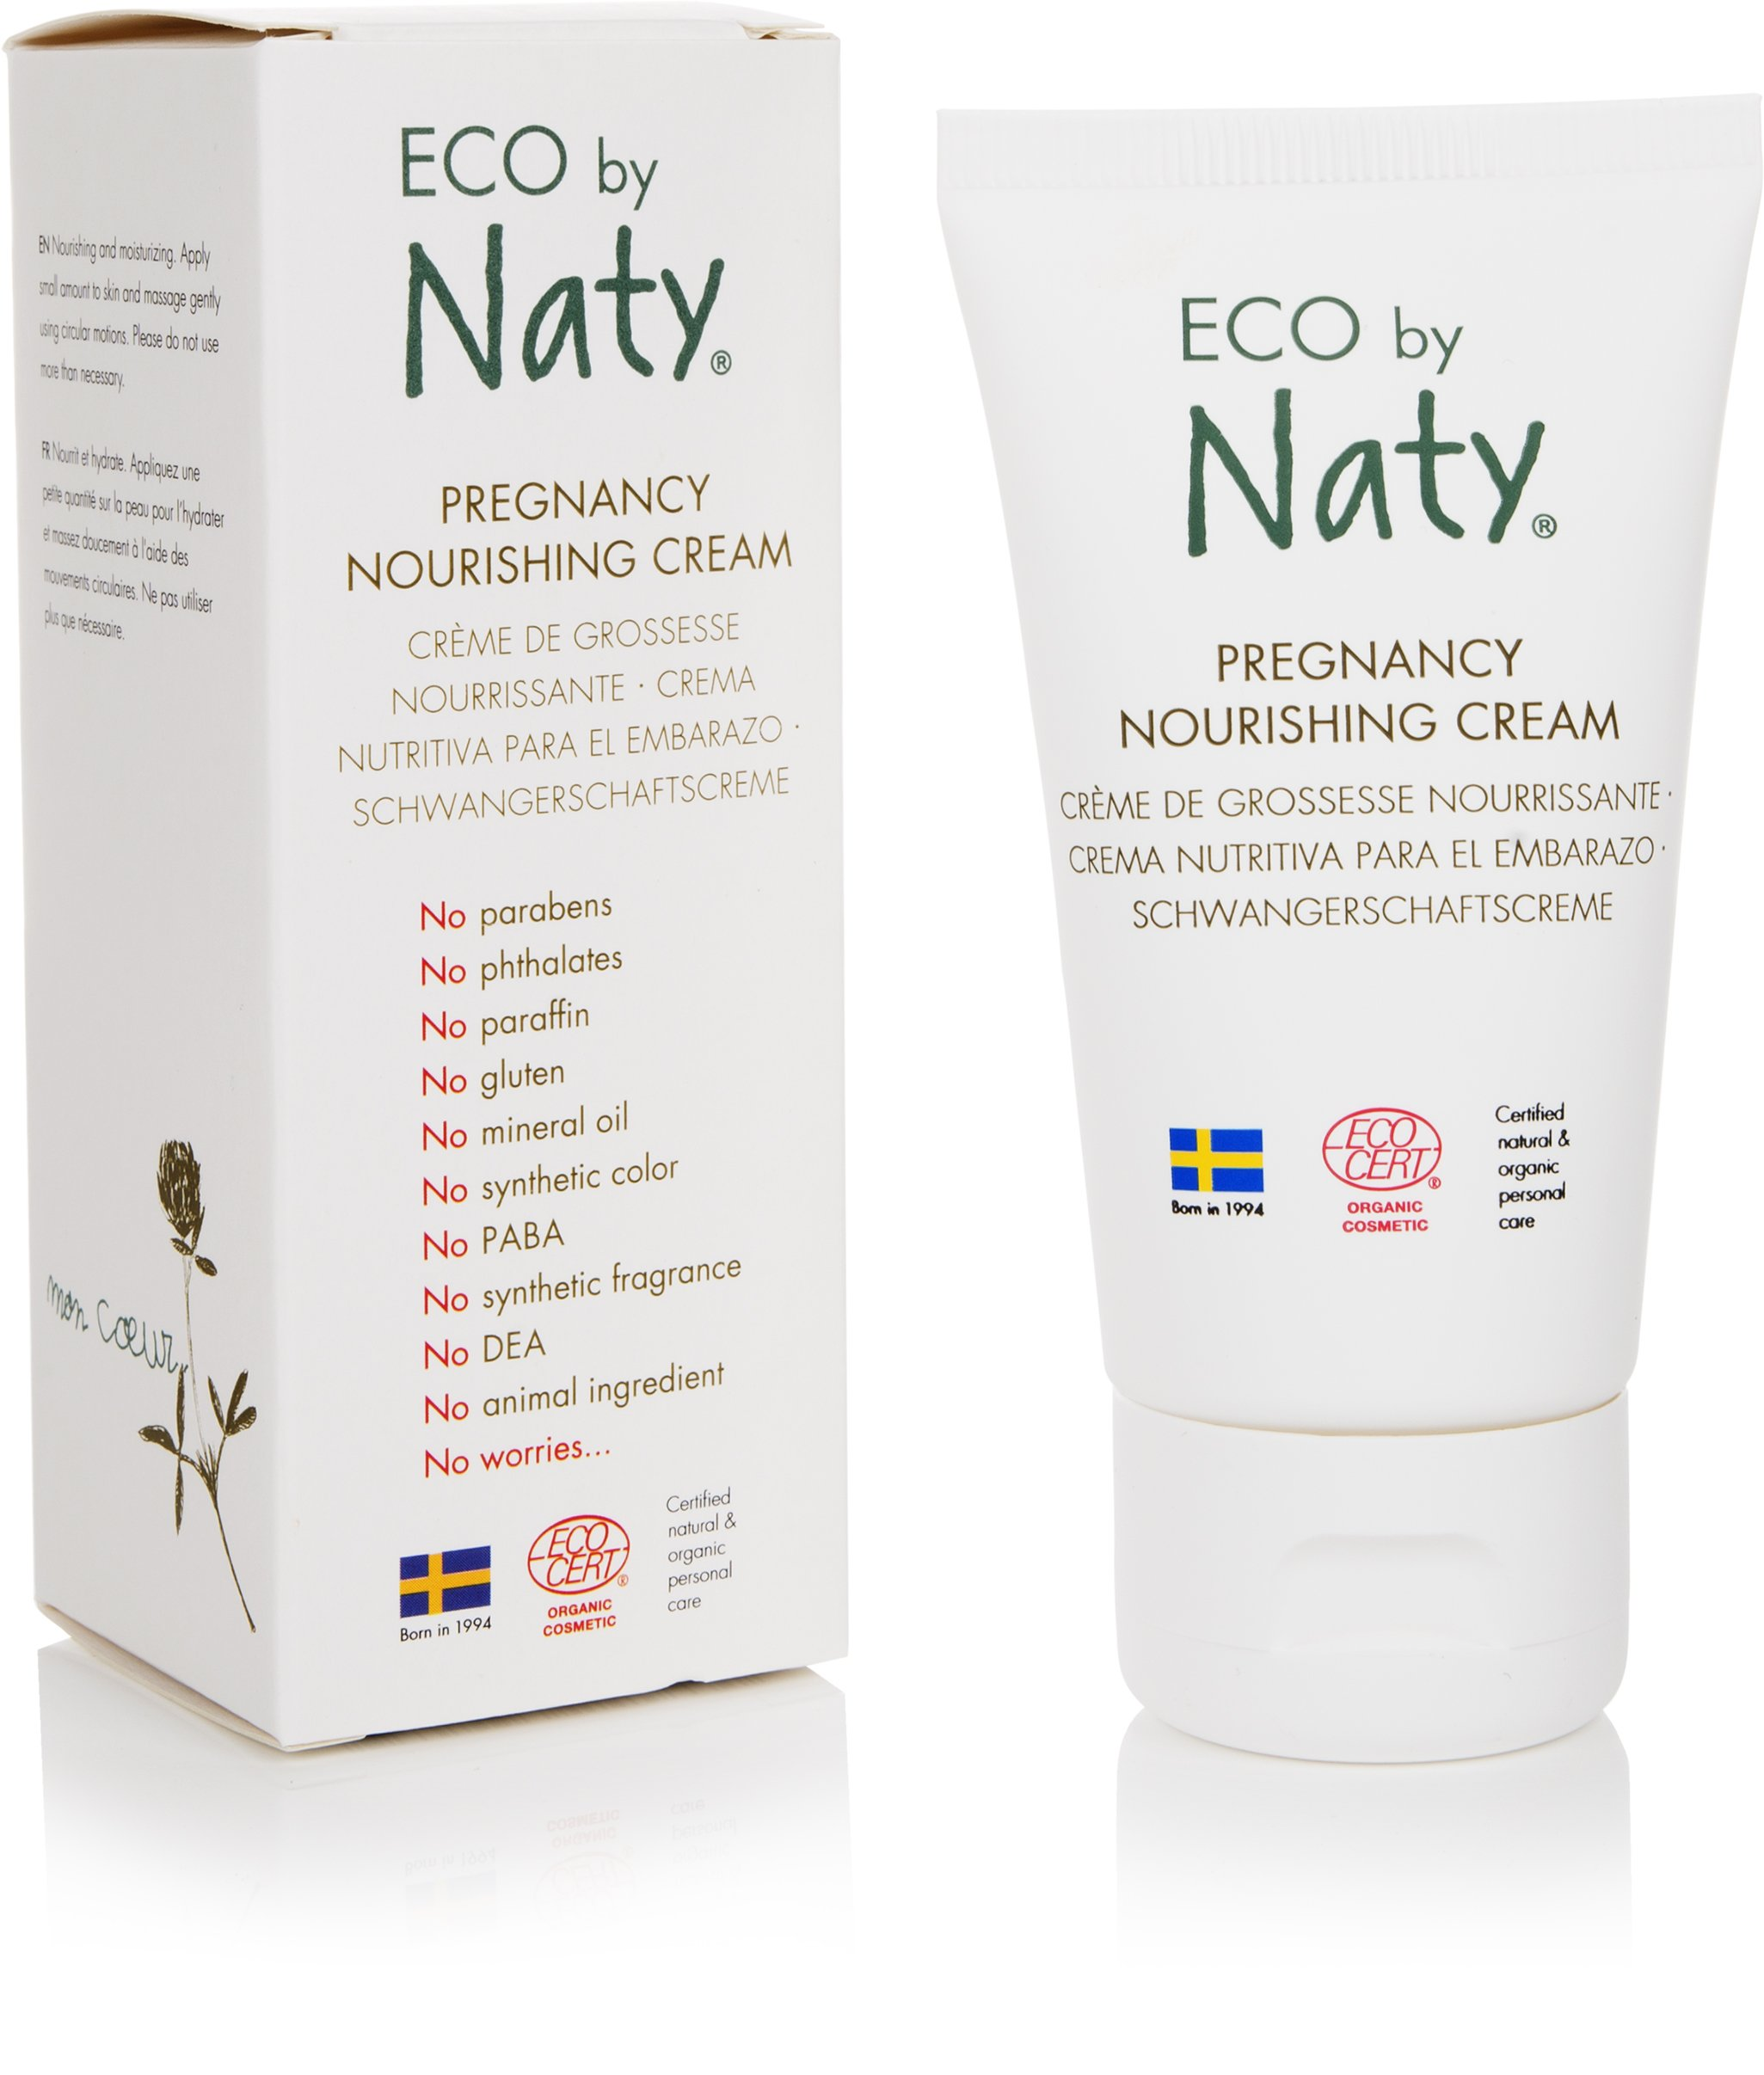 Eco by Naty Ecocert Certified Organic Pregnancy Nourishing Cream for Dry and Stretching Skin, 1.7 Fl. Ounce (Pack of 1)